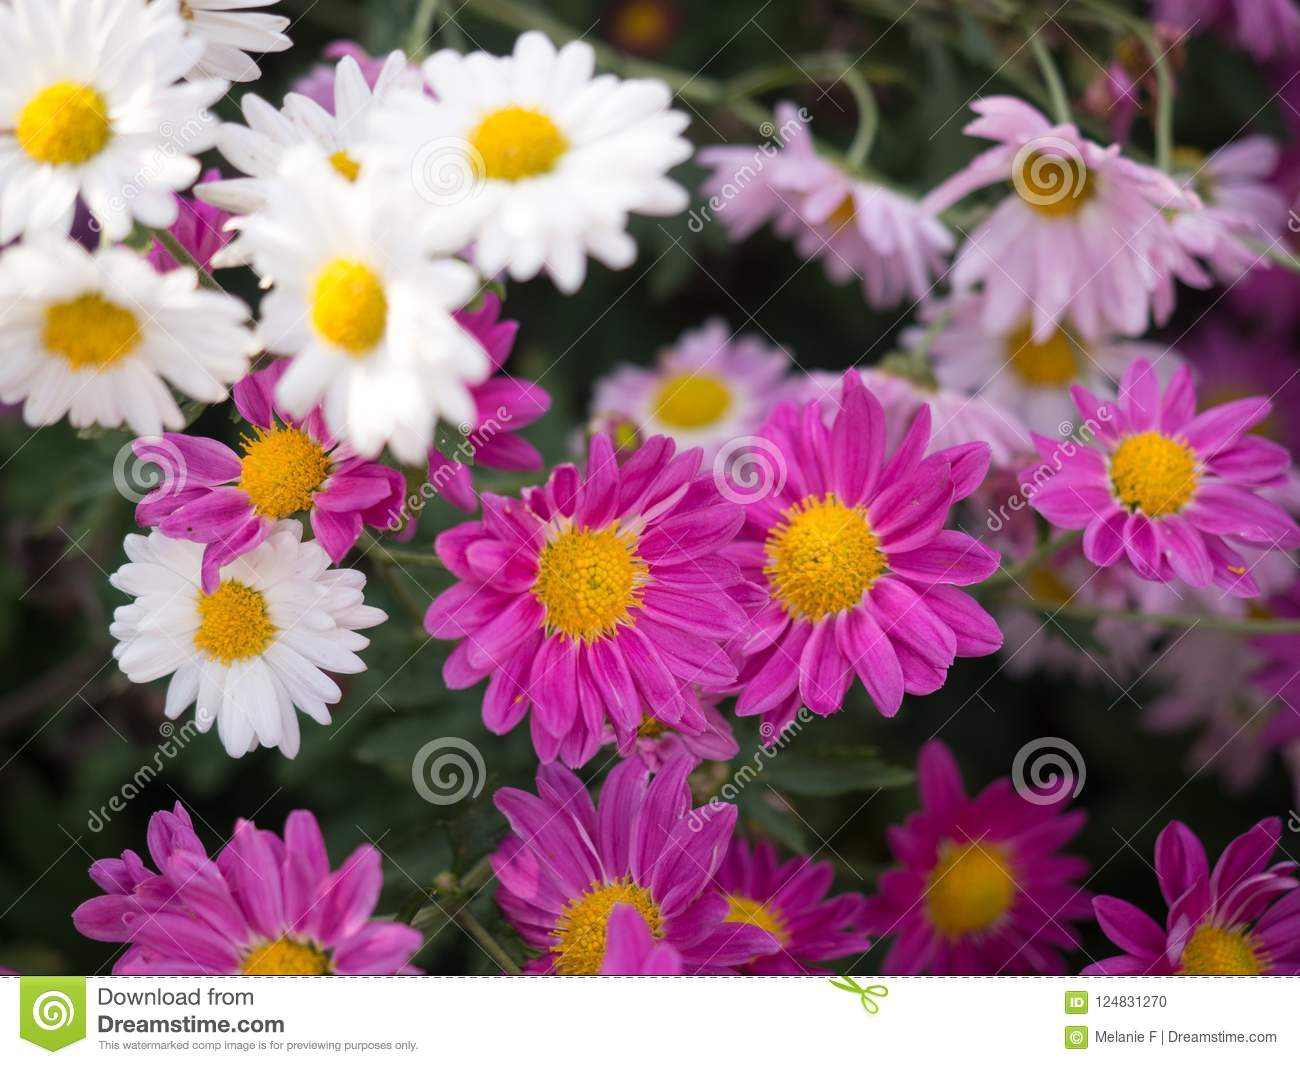 Bright pink and white mums flowers blooming in the garden stock download bright pink and white mums flowers blooming in the garden stock photo image of mightylinksfo